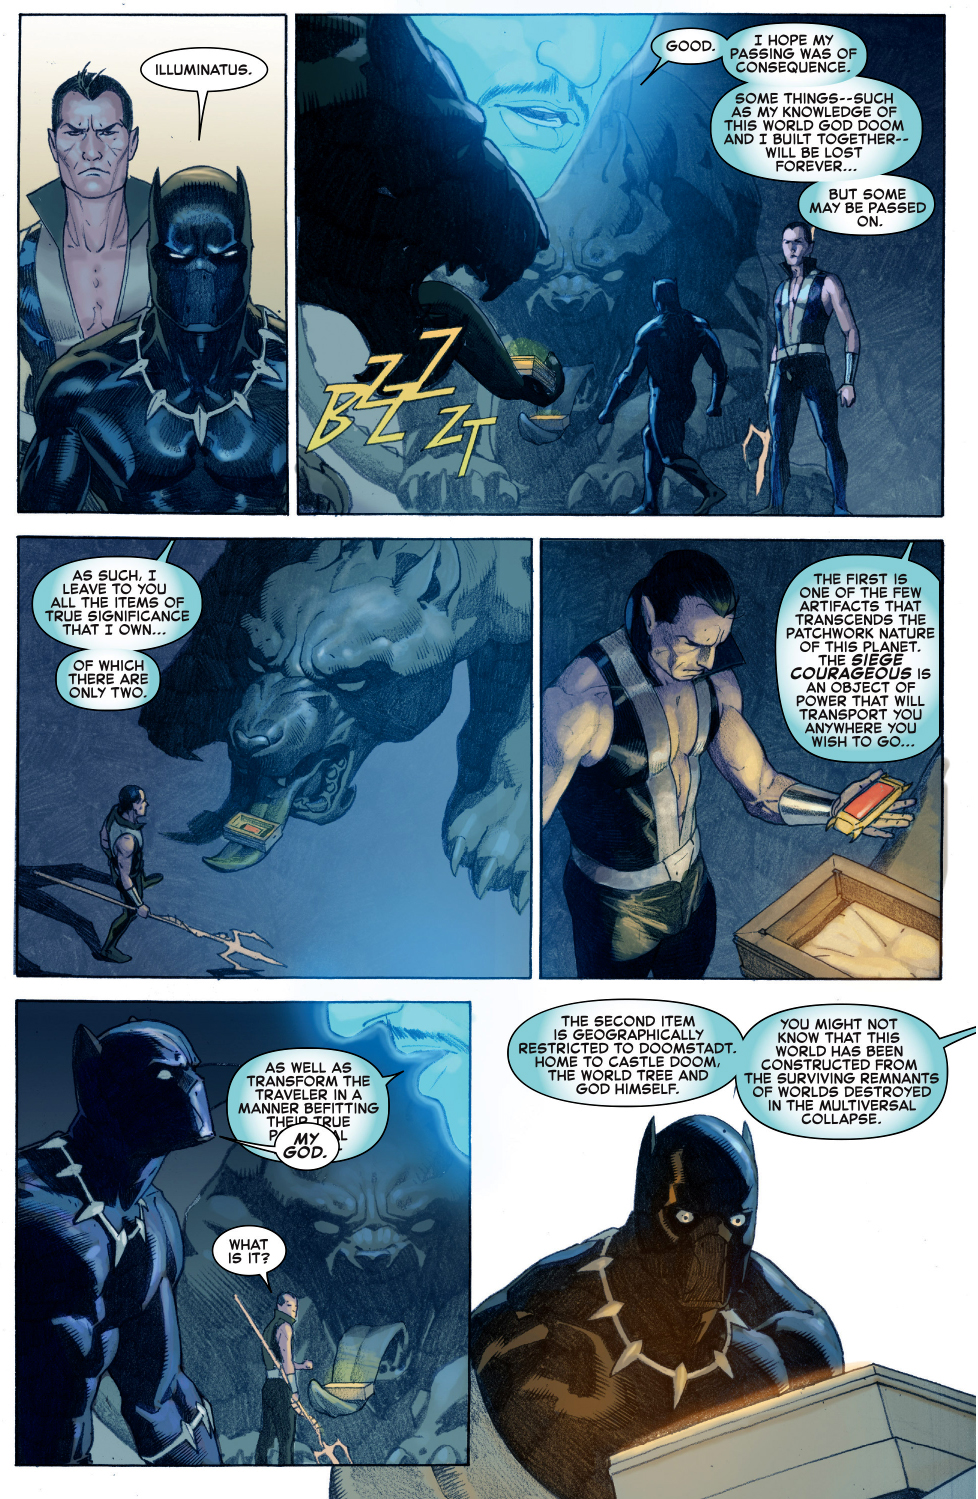 black panther finds an infinity gauntlet